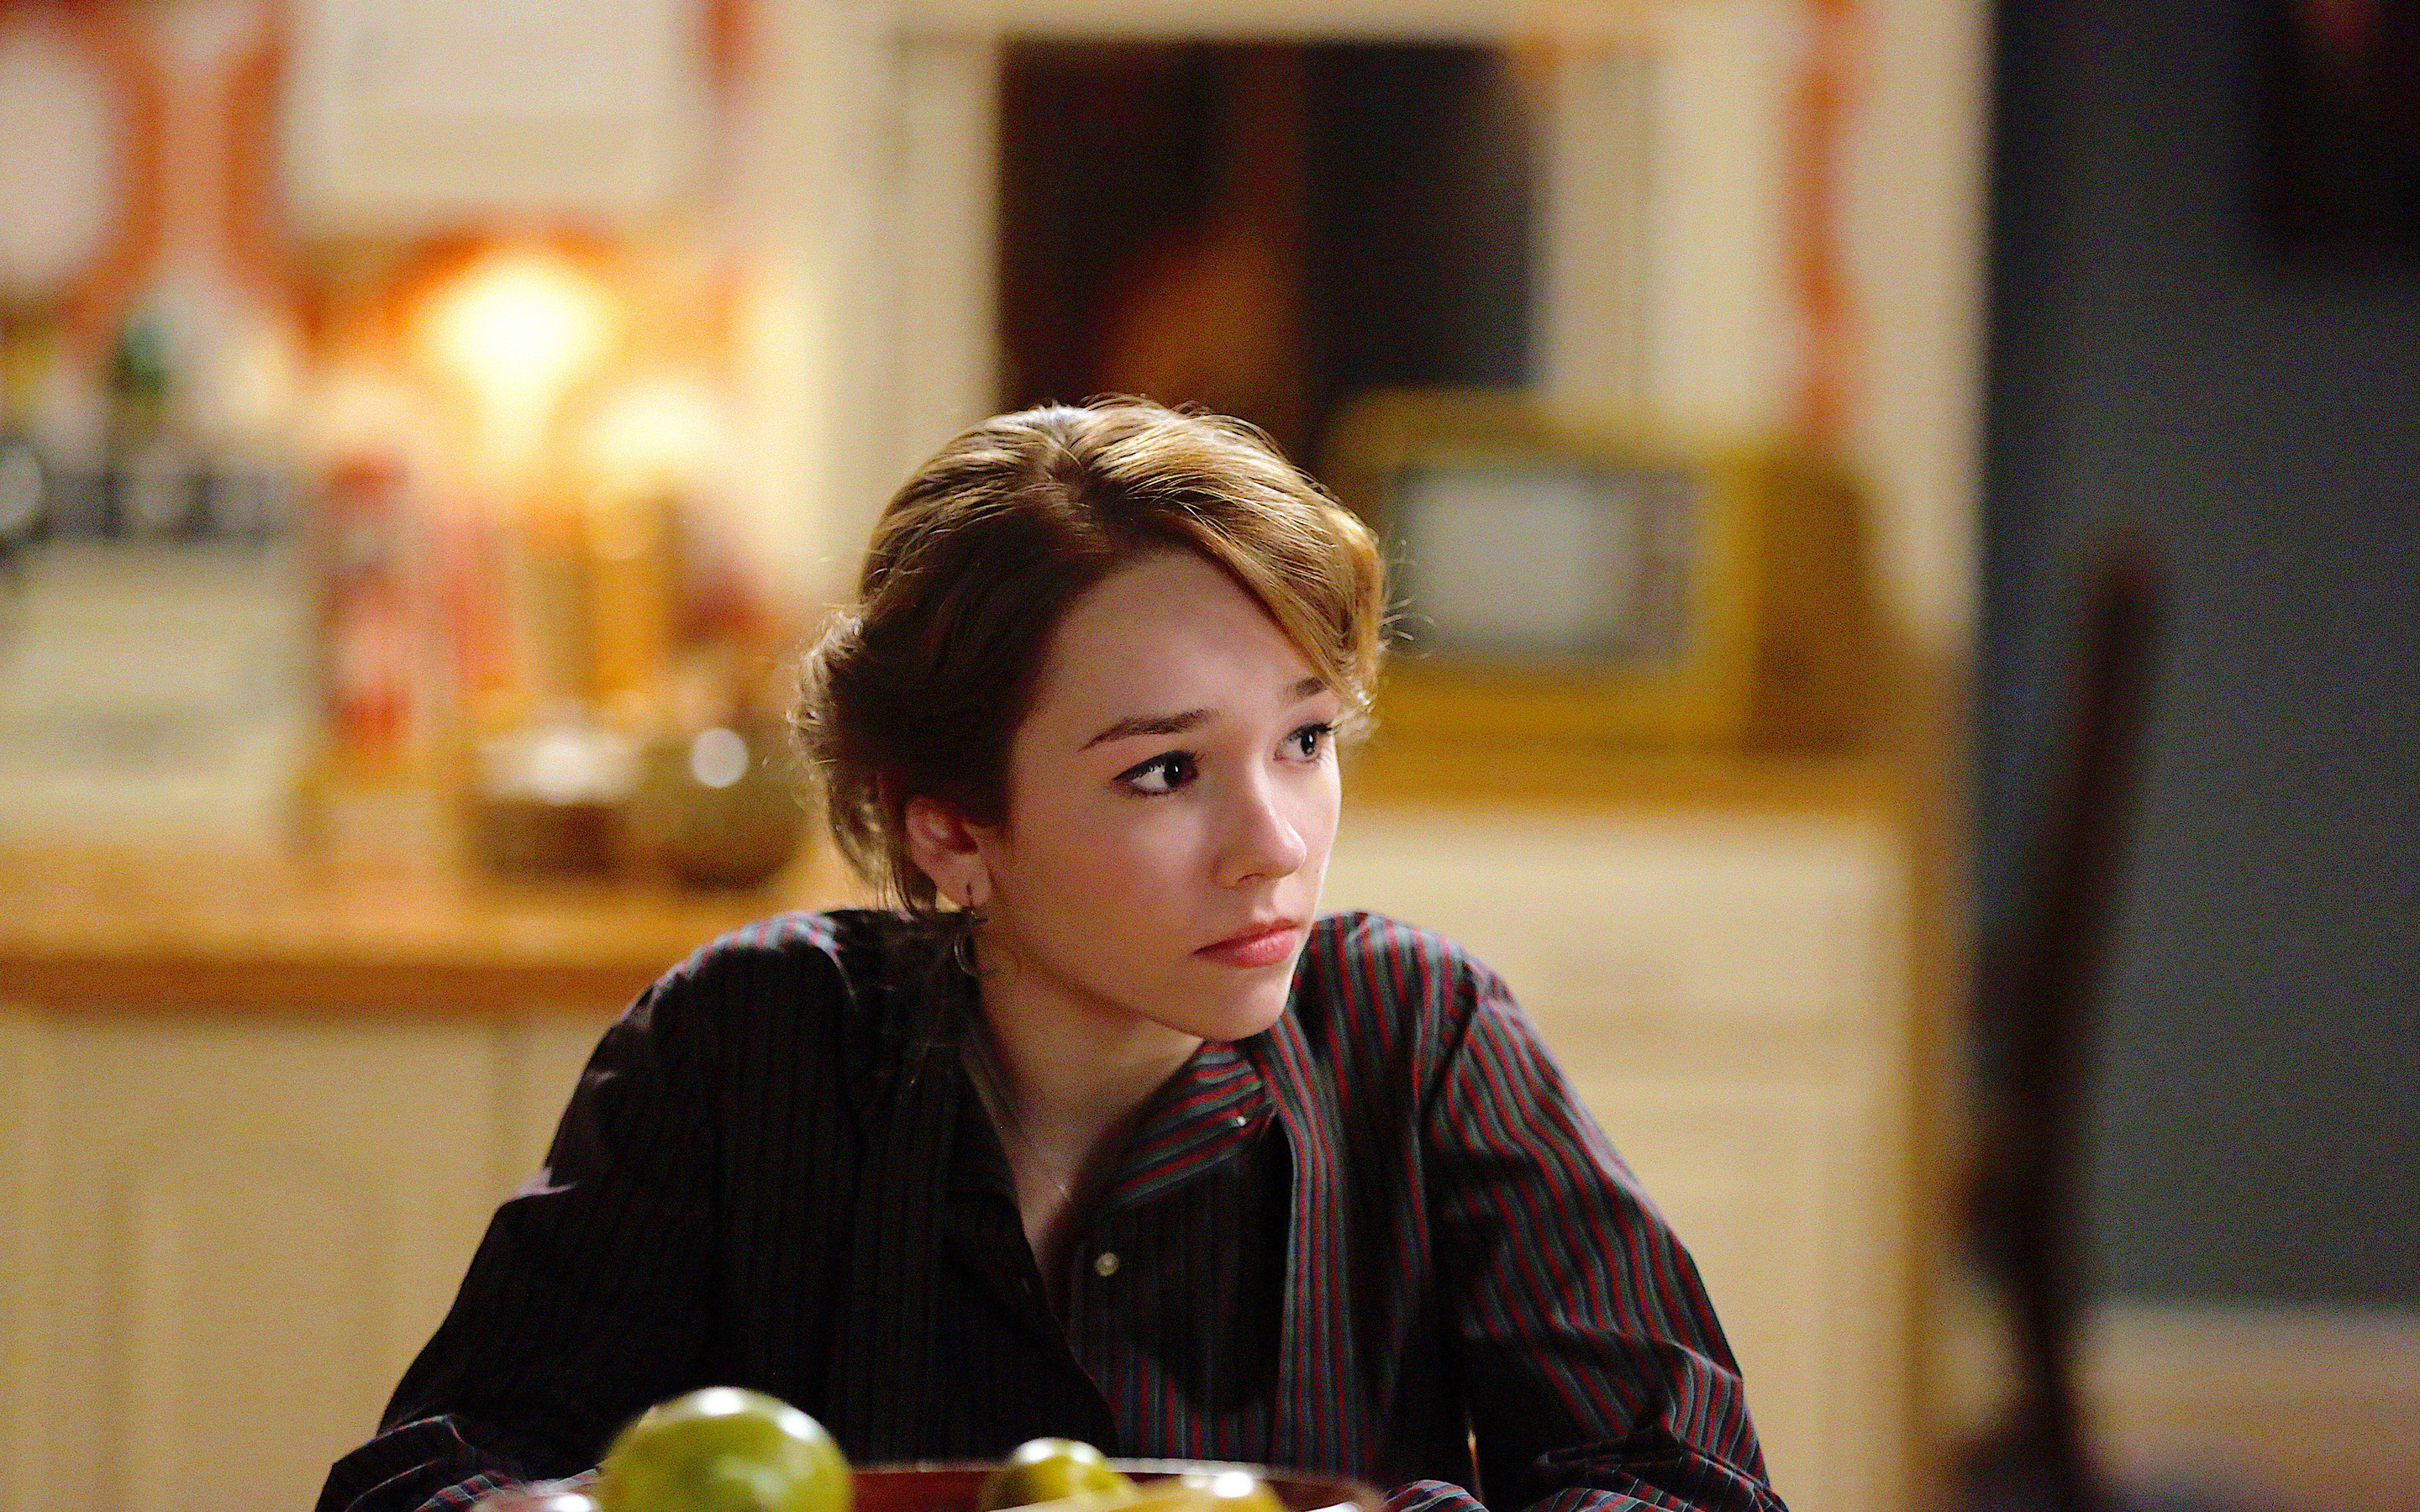 2880x1800 Holly Taylor The Americans Macbook Pro Retina Hd